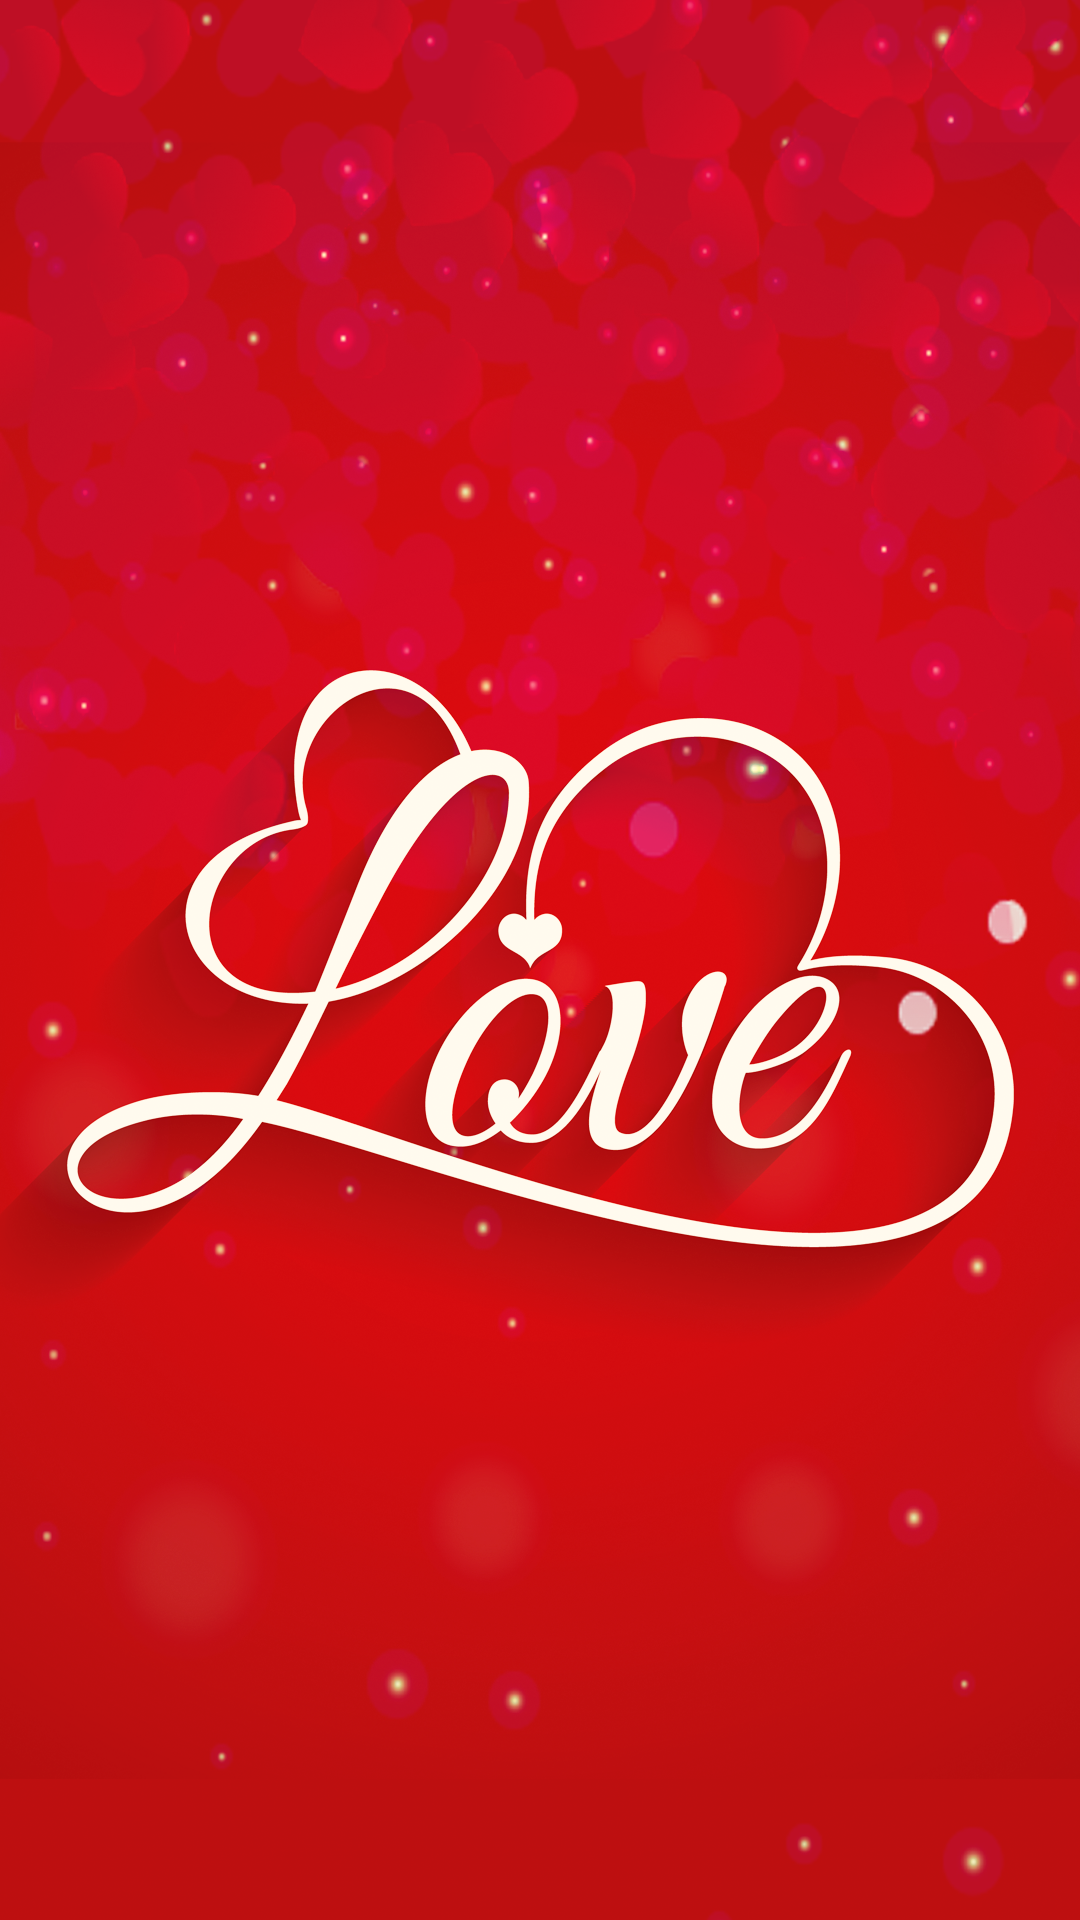 ultra hd red love wallpaper for your mobile phone 0496